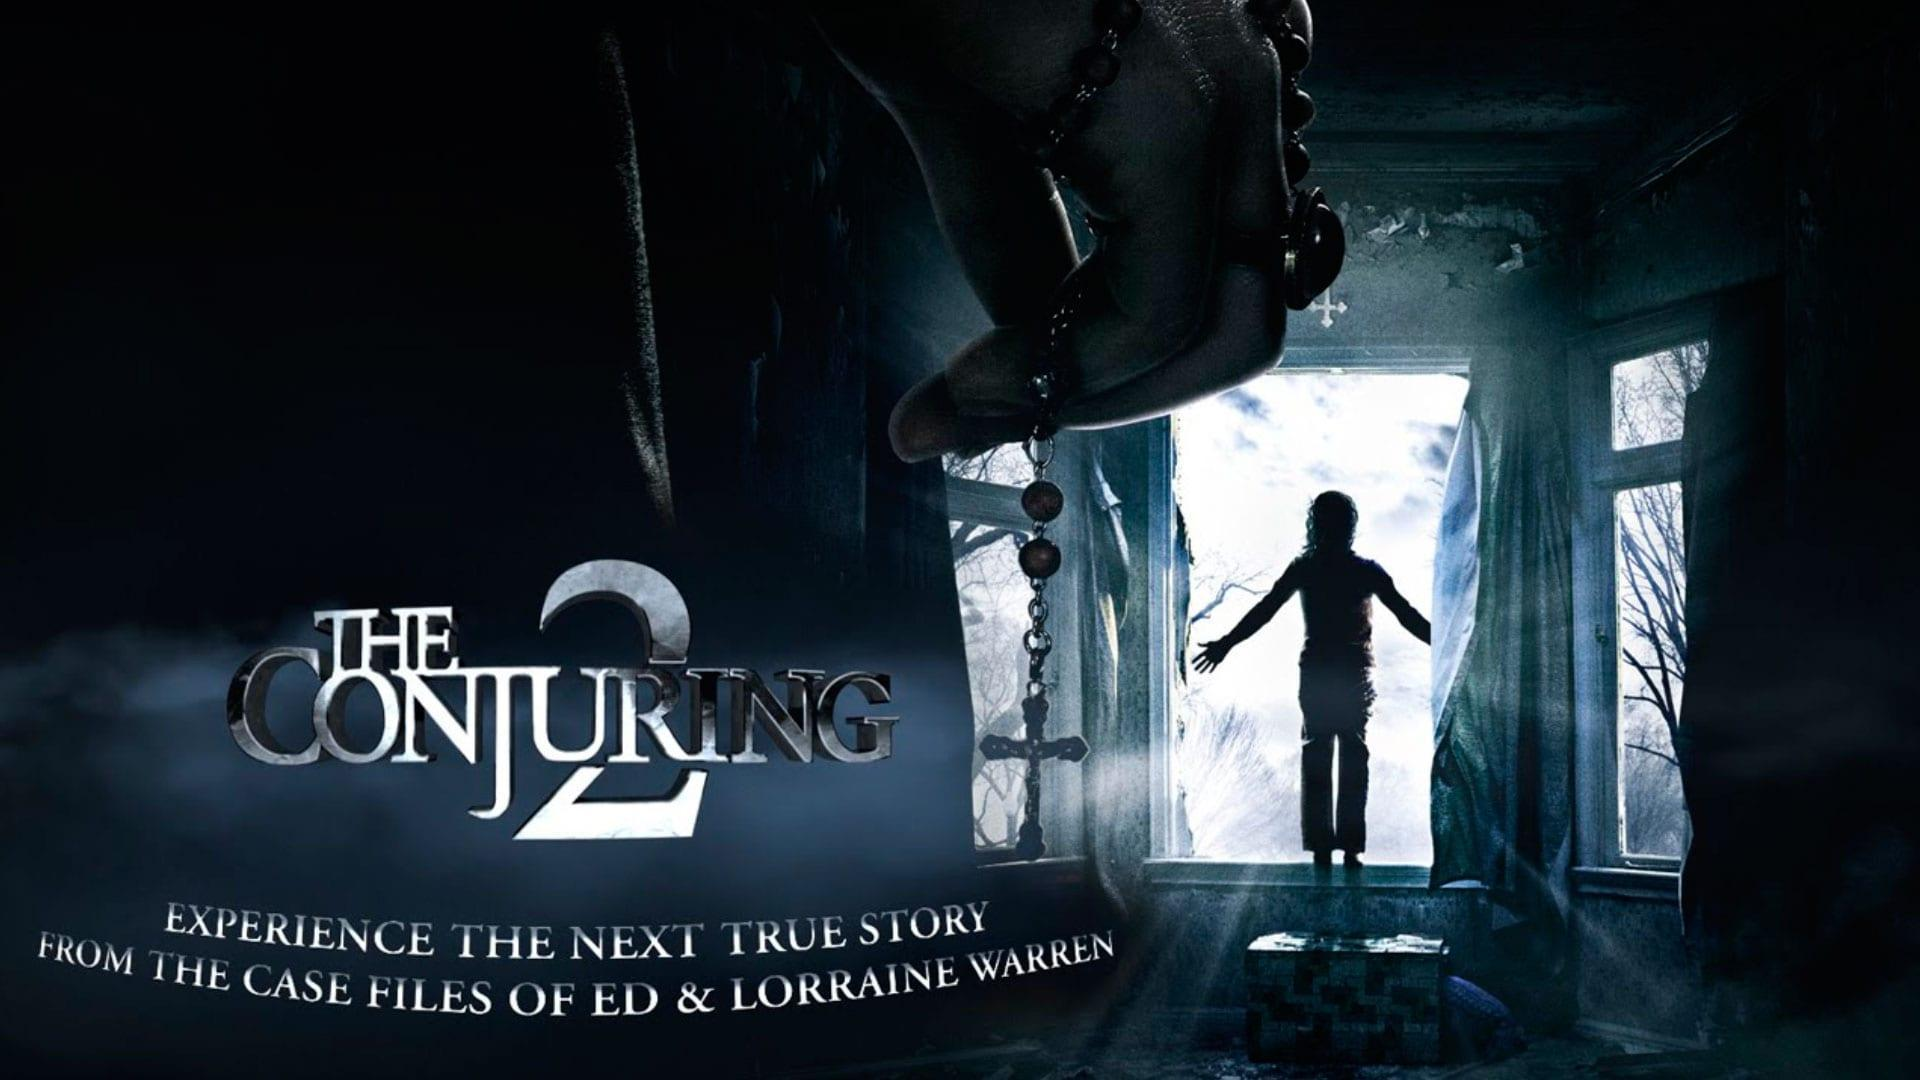 conjuring 2 full movie hd download free